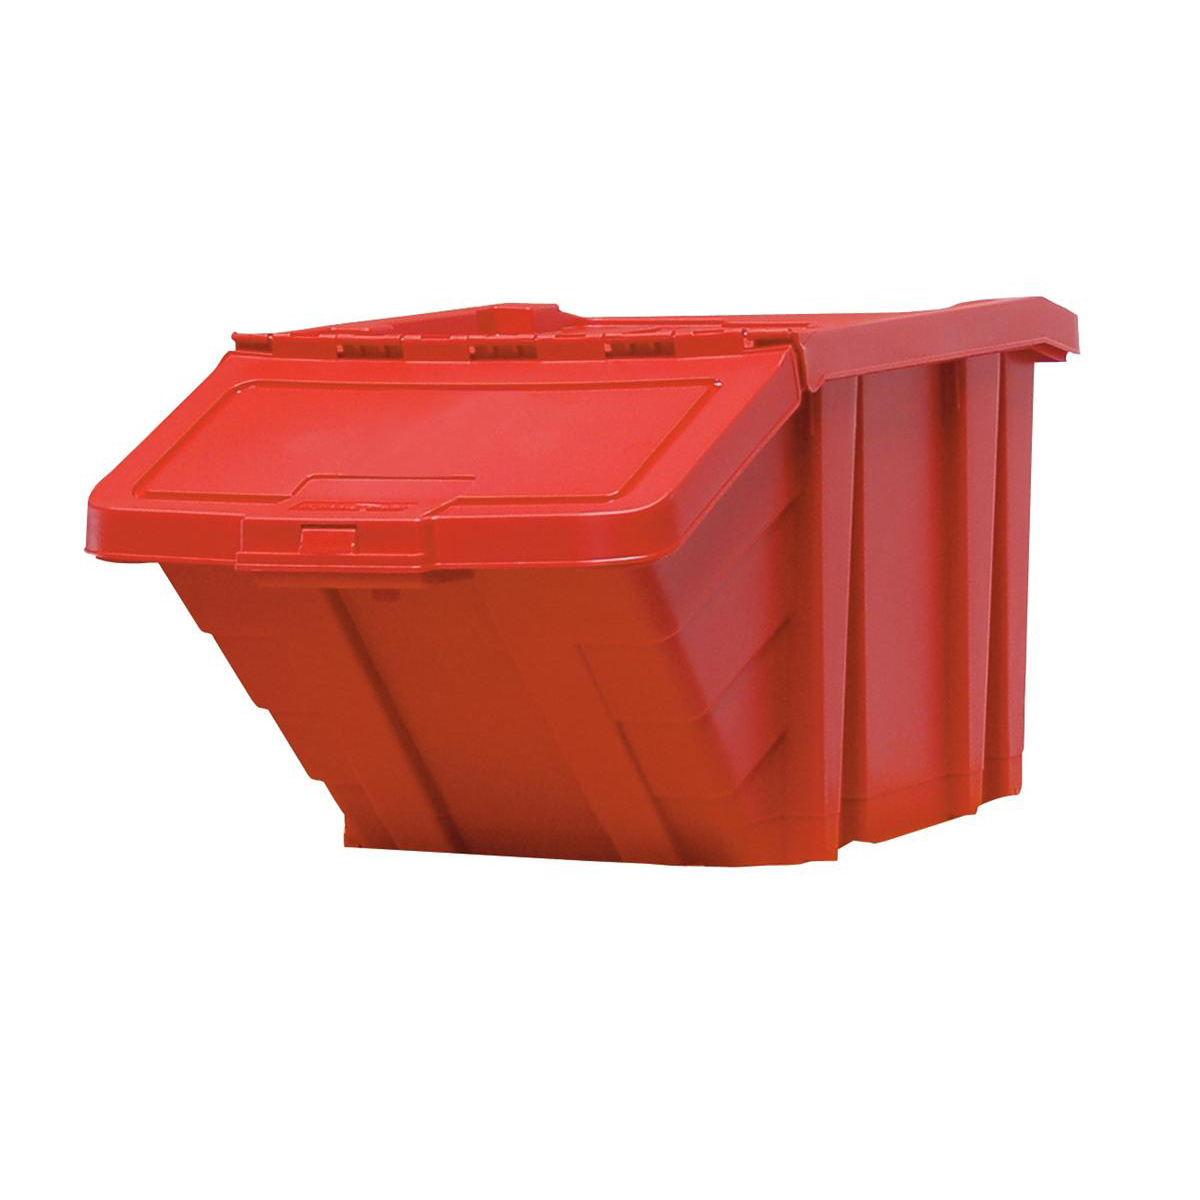 Containers Recycle Storage Bin and Lid Red 400x635x345mm